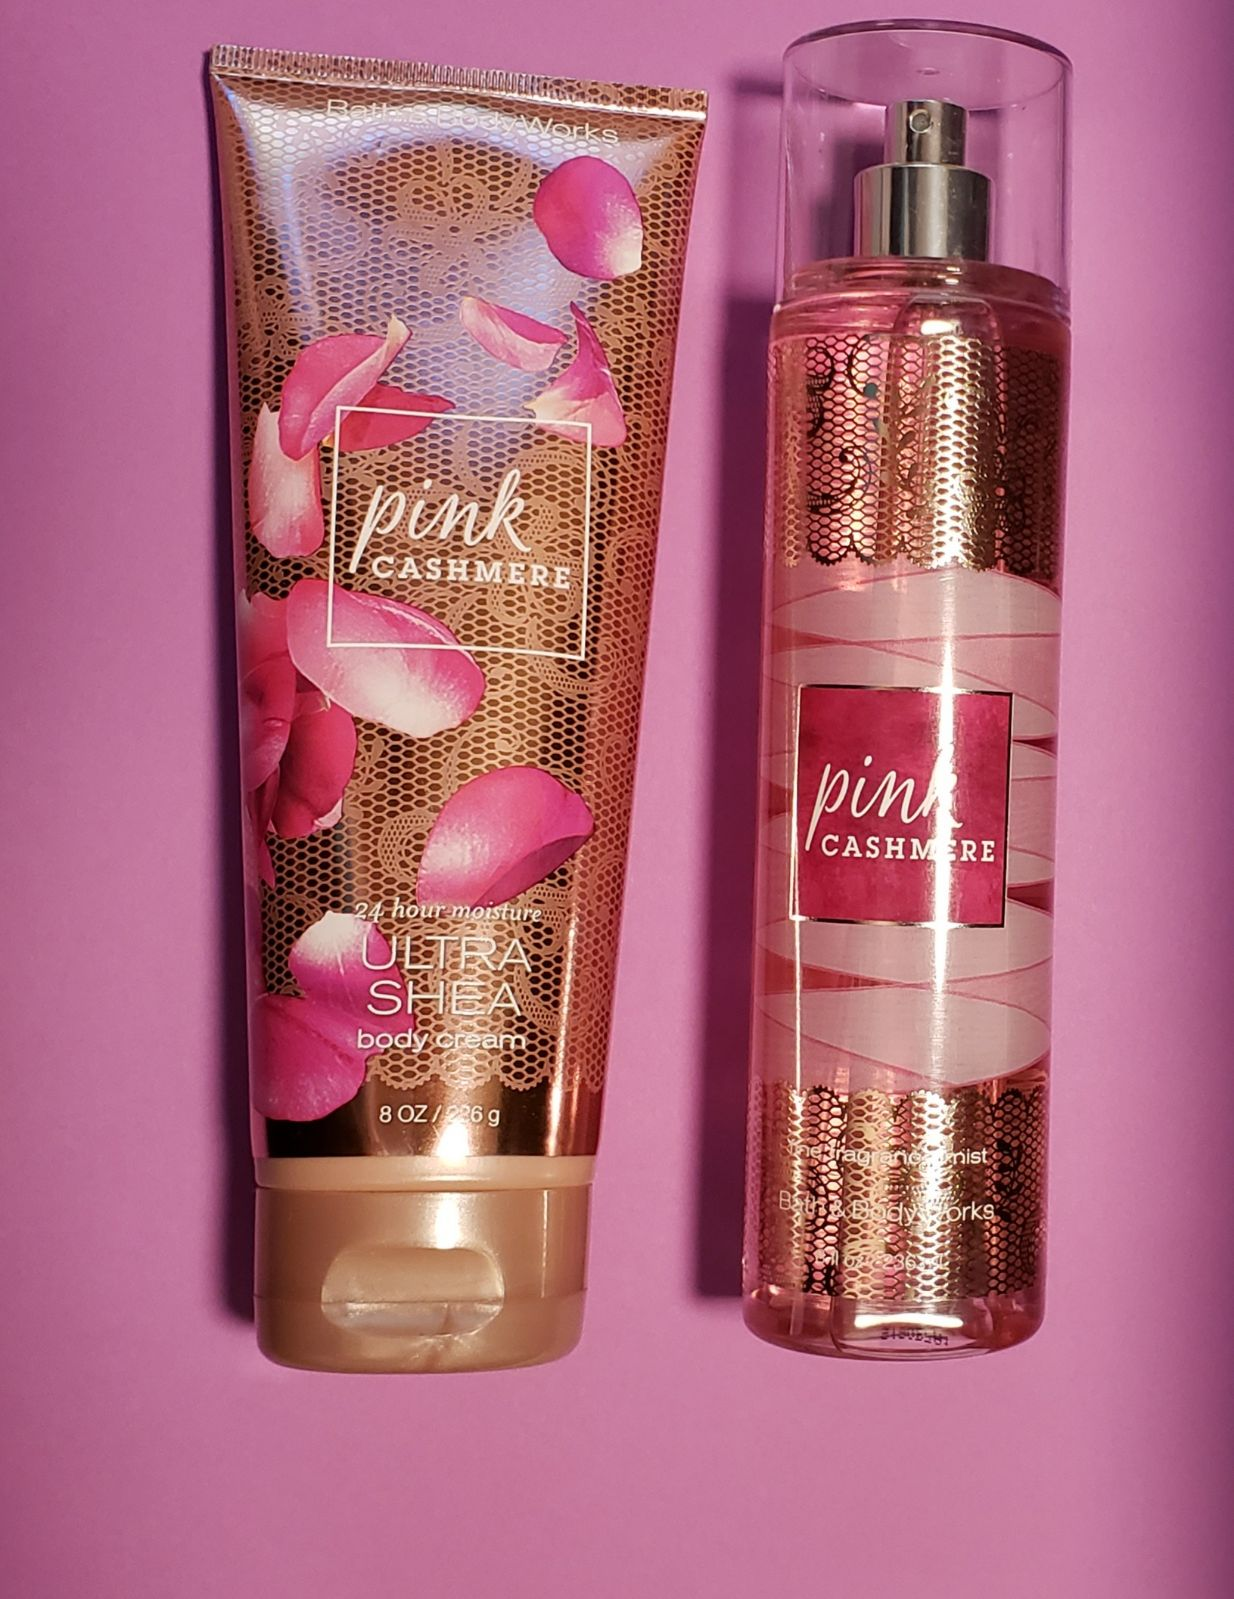 Bath and Body Works Pink Chashmere